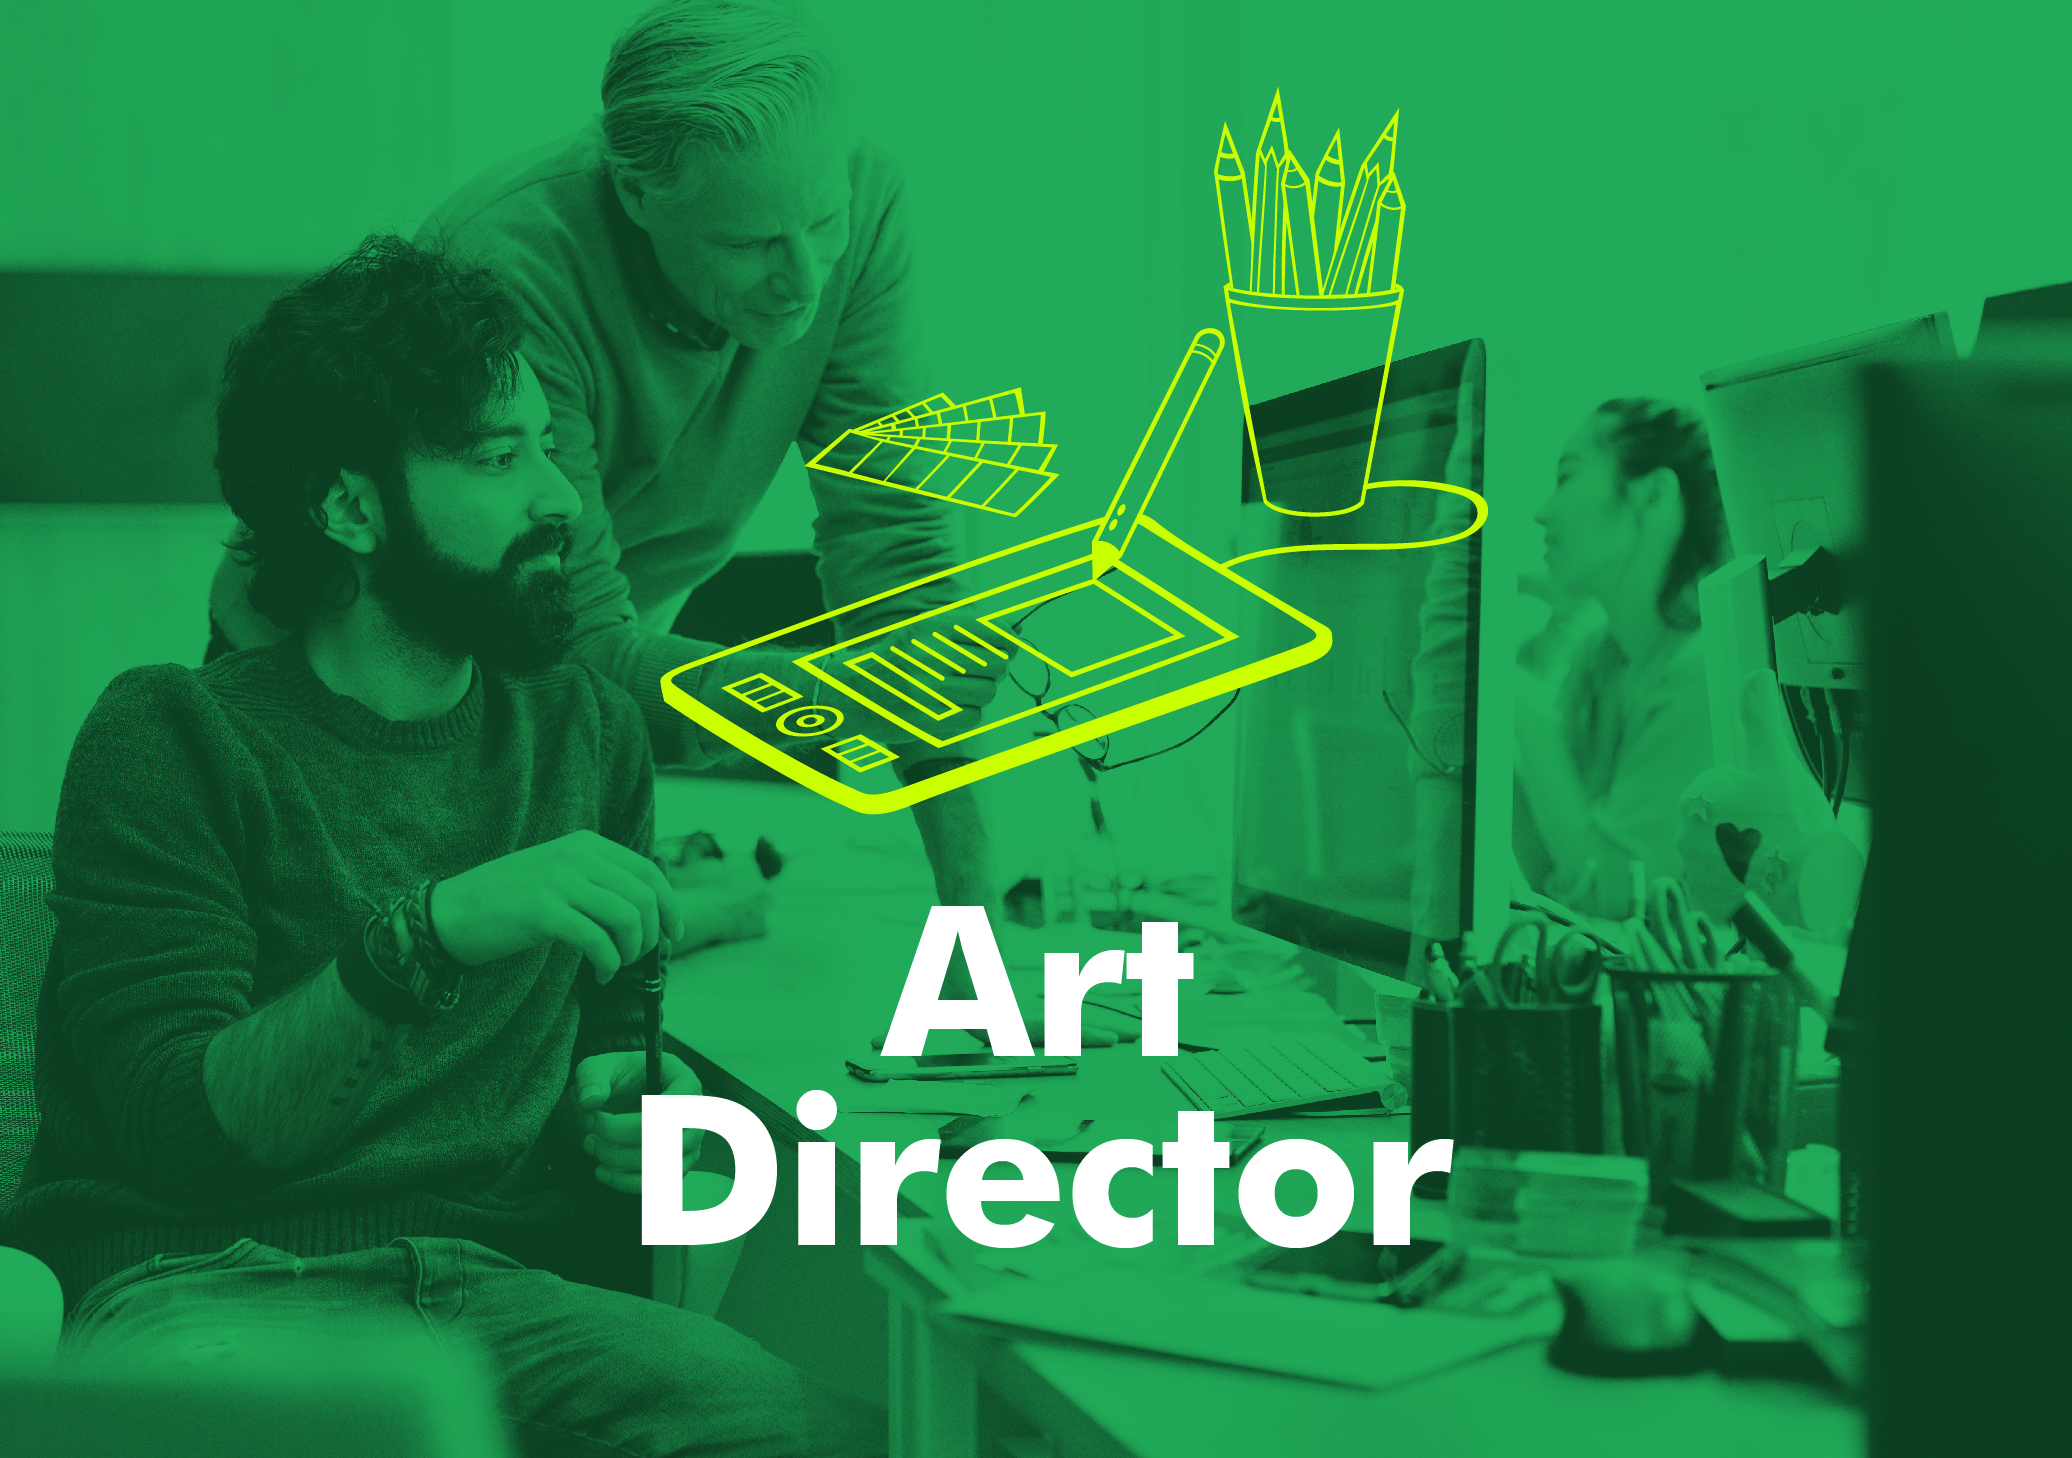 art director job description and salary outlook